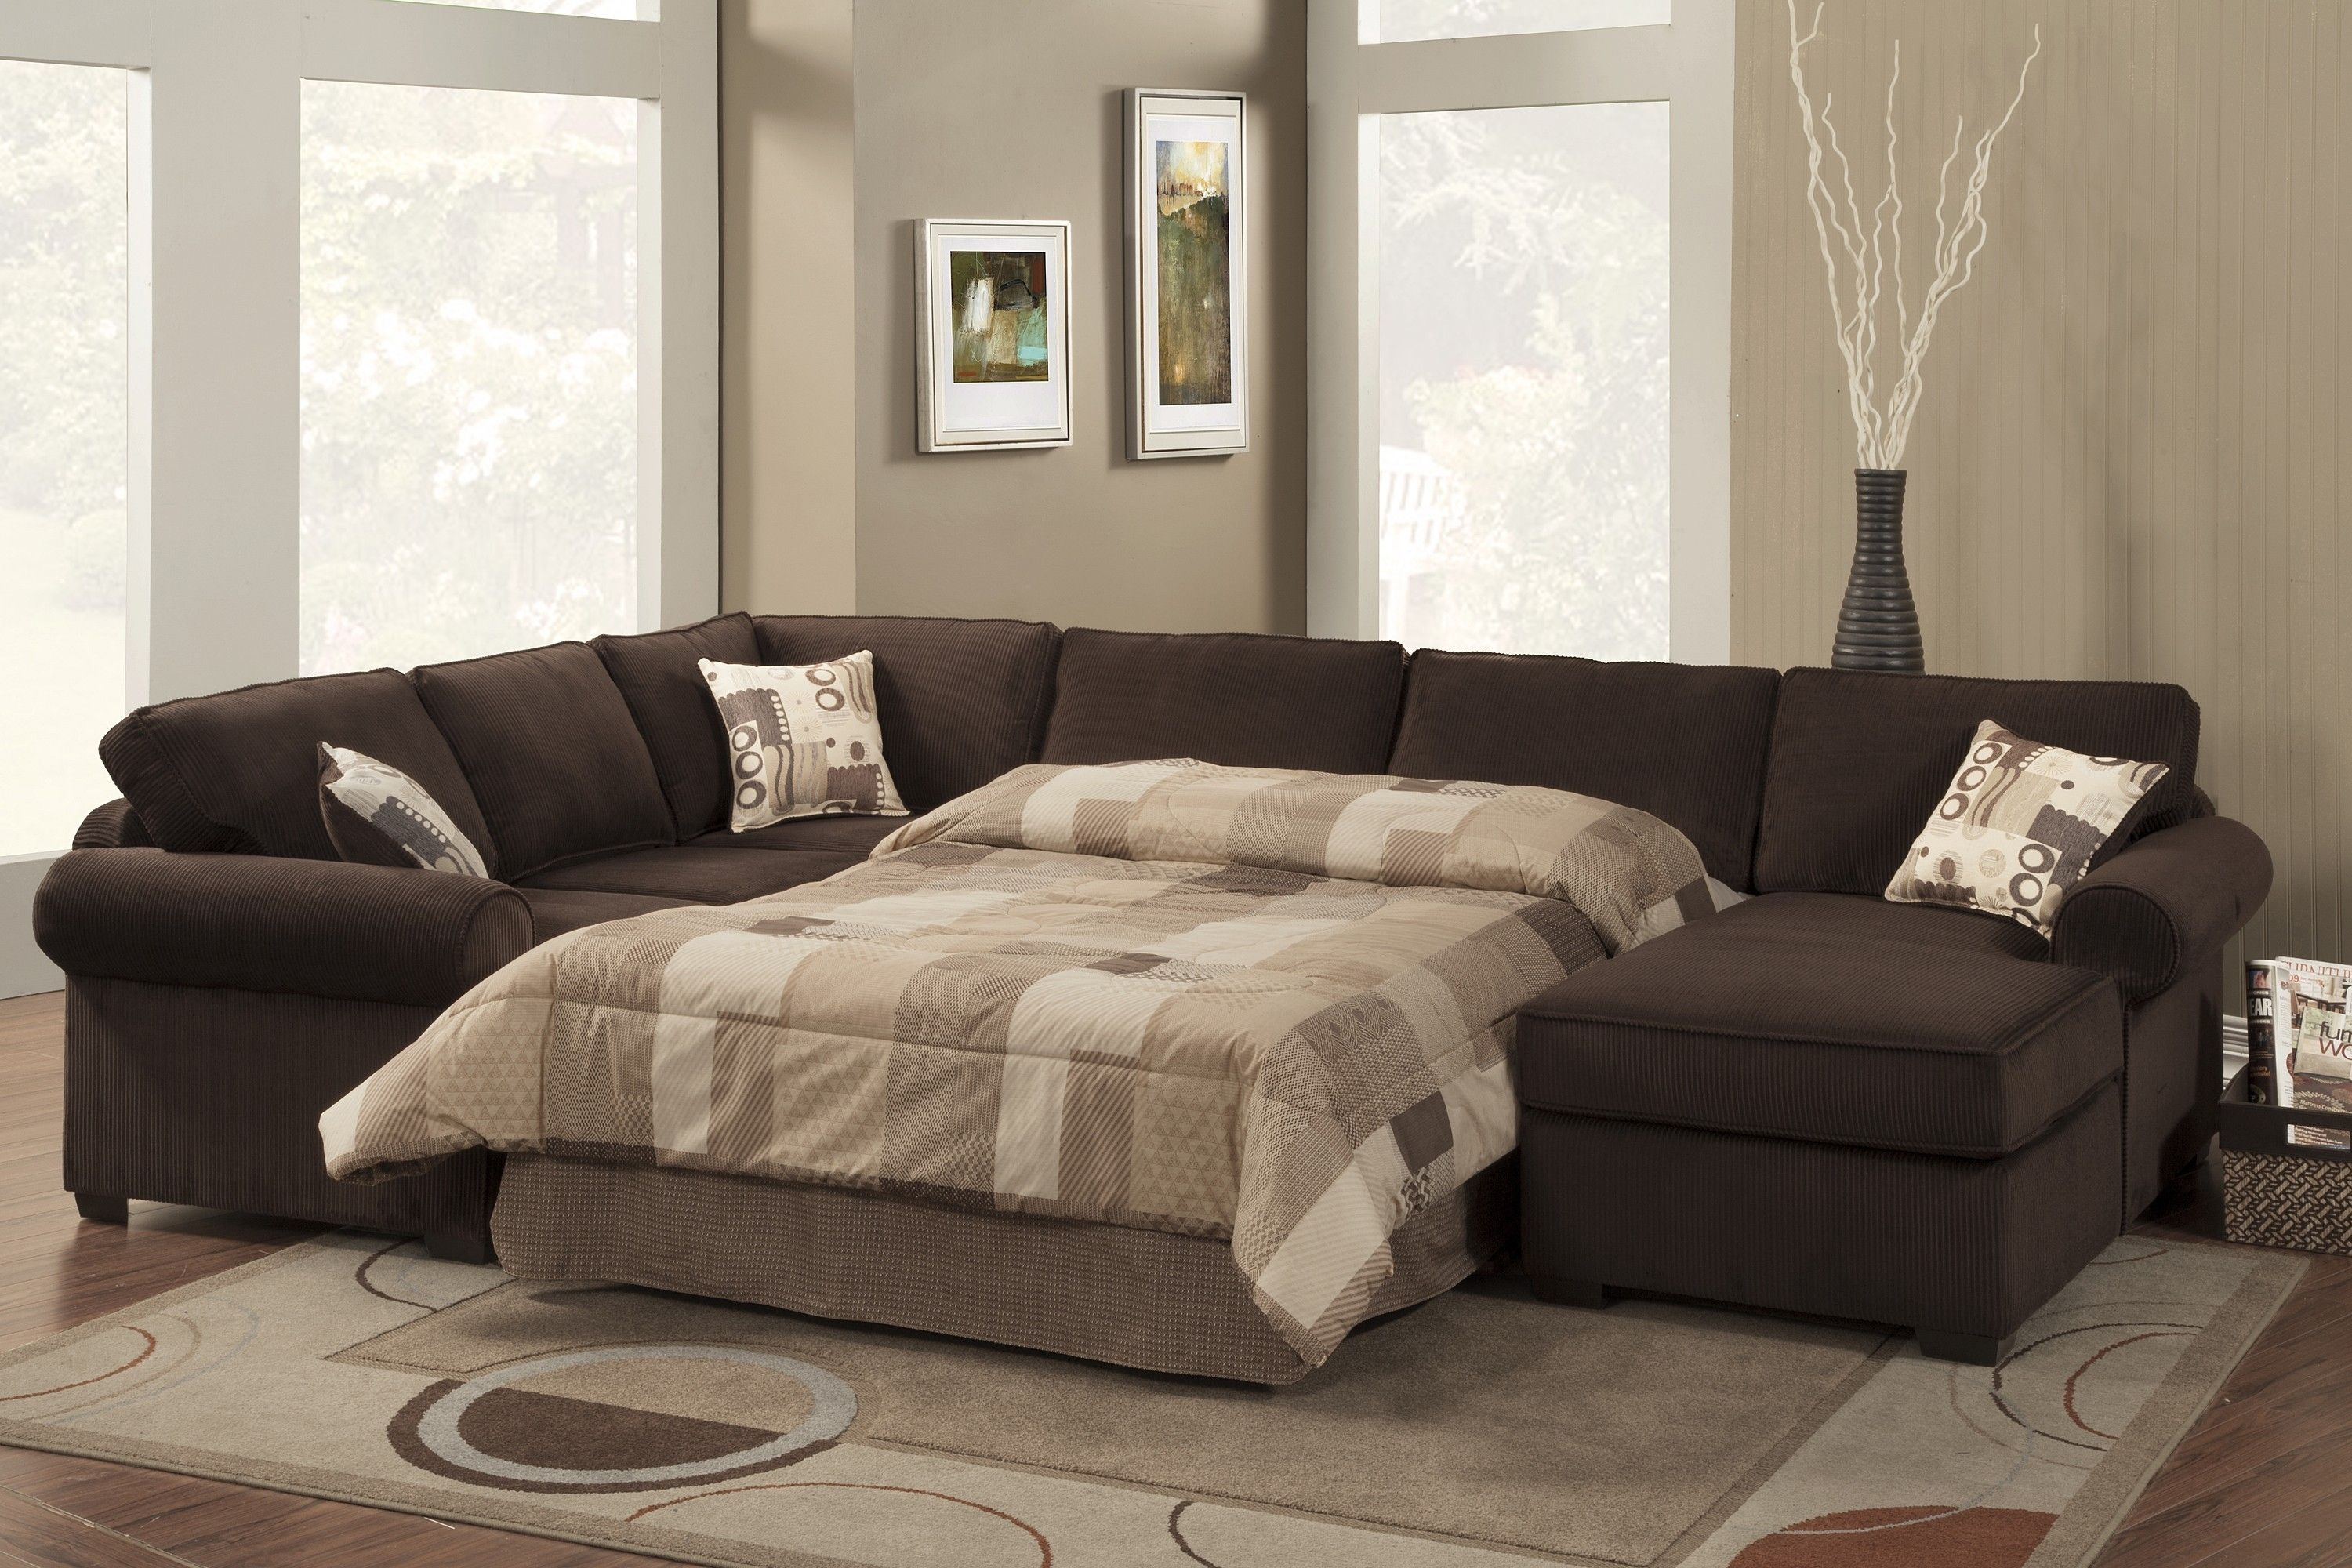 Sectional Sleeper Sofa With Queen Bed Sectional Sofa With Chaise Sofas For Small Spaces Sectional Sleeper Sofa